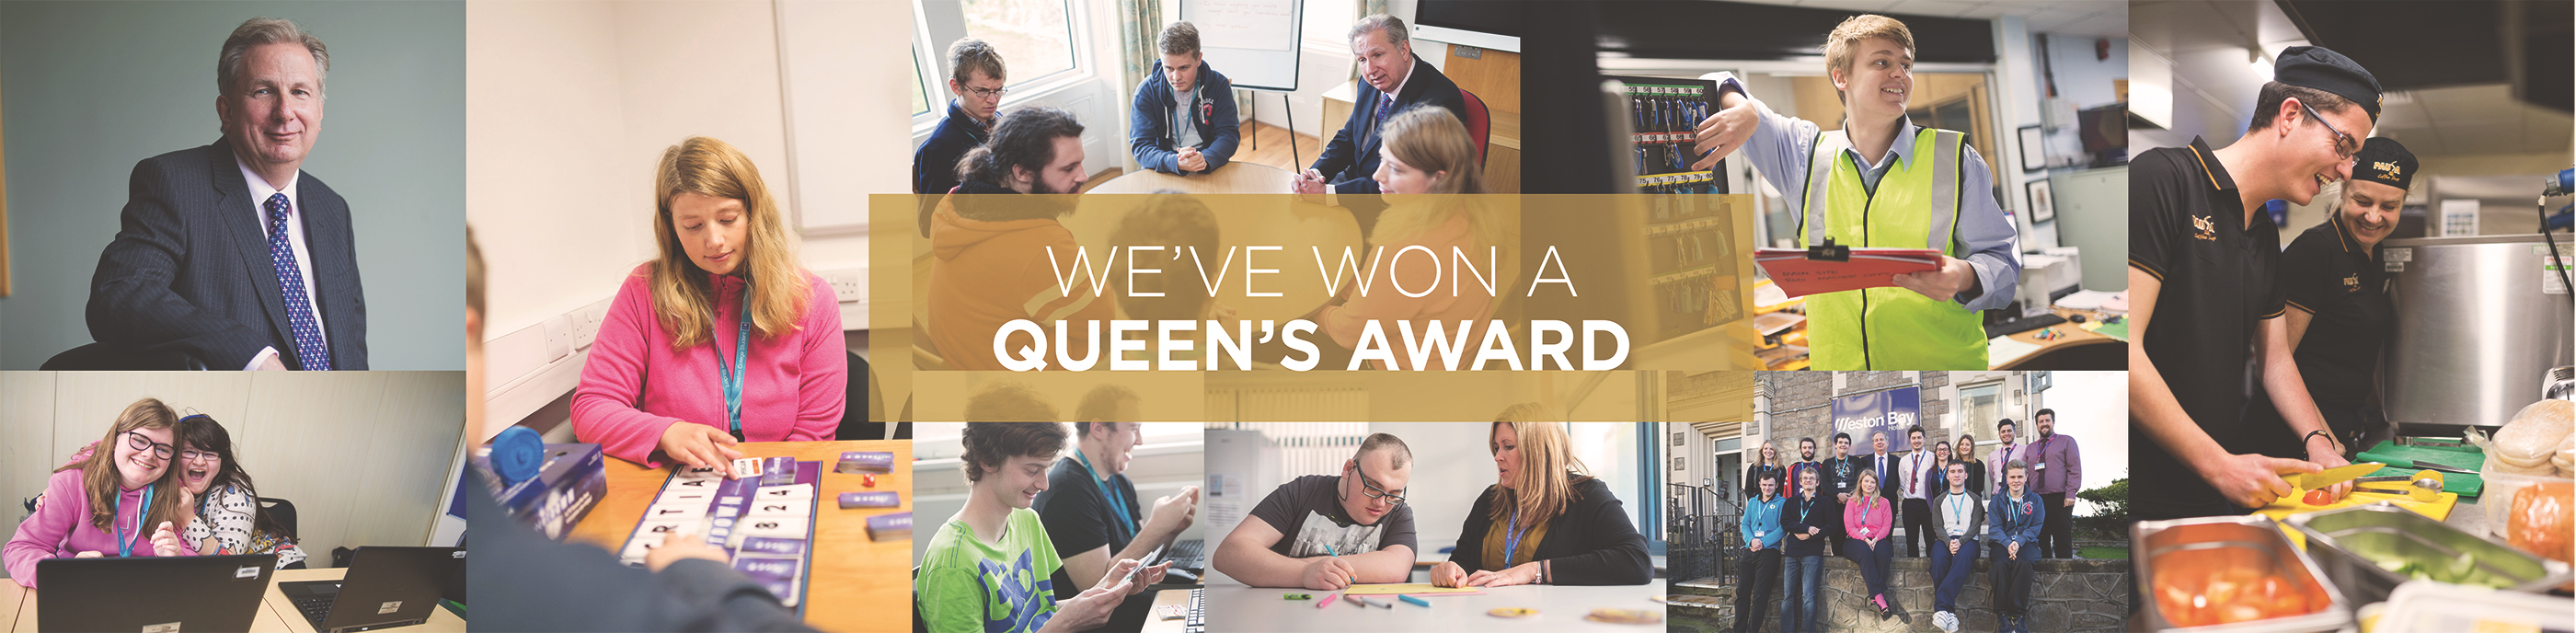 Ldd Queens Award